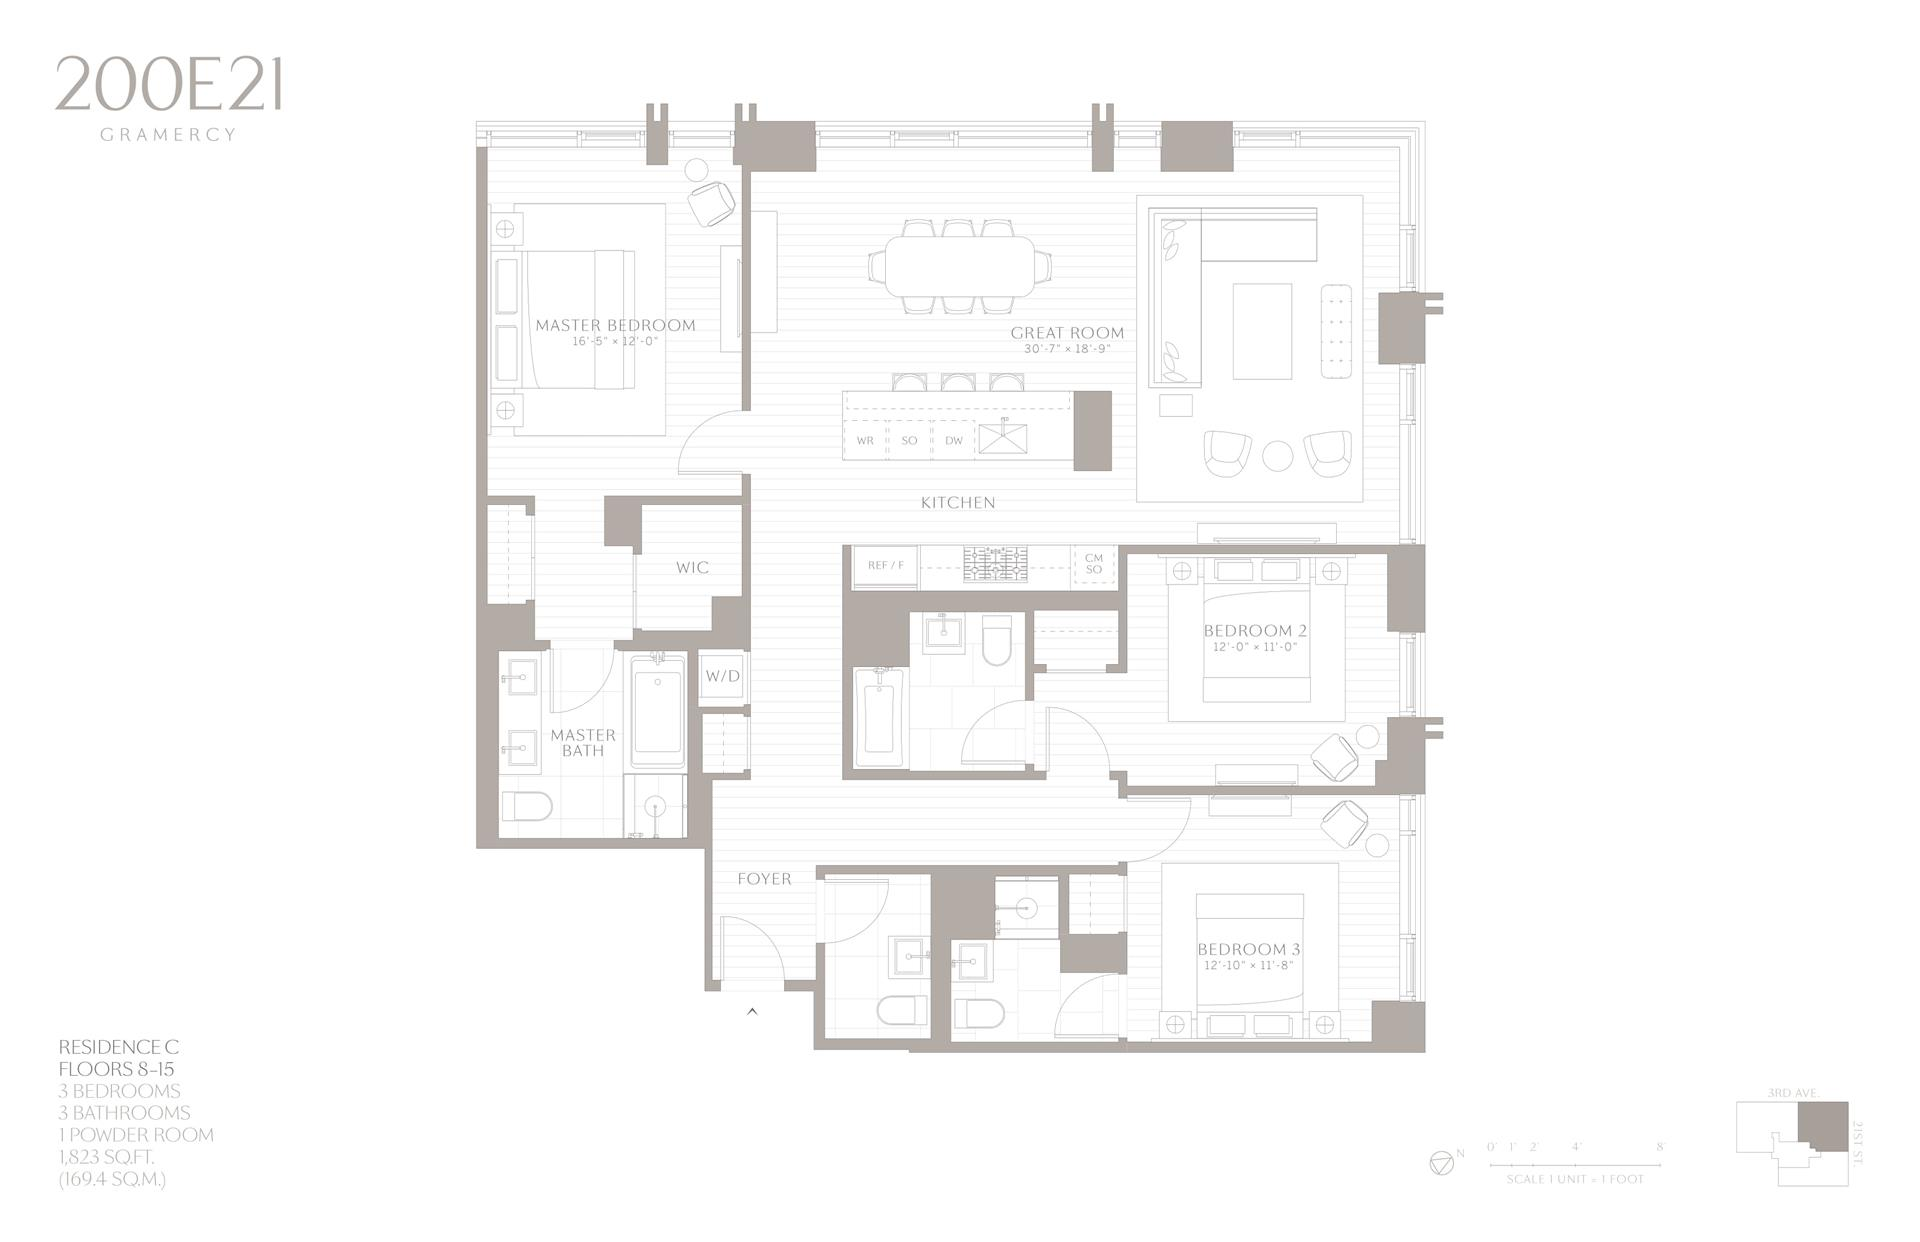 Floor plan of 200 East 21st Street, 12C - Gramercy - Union Square, New York